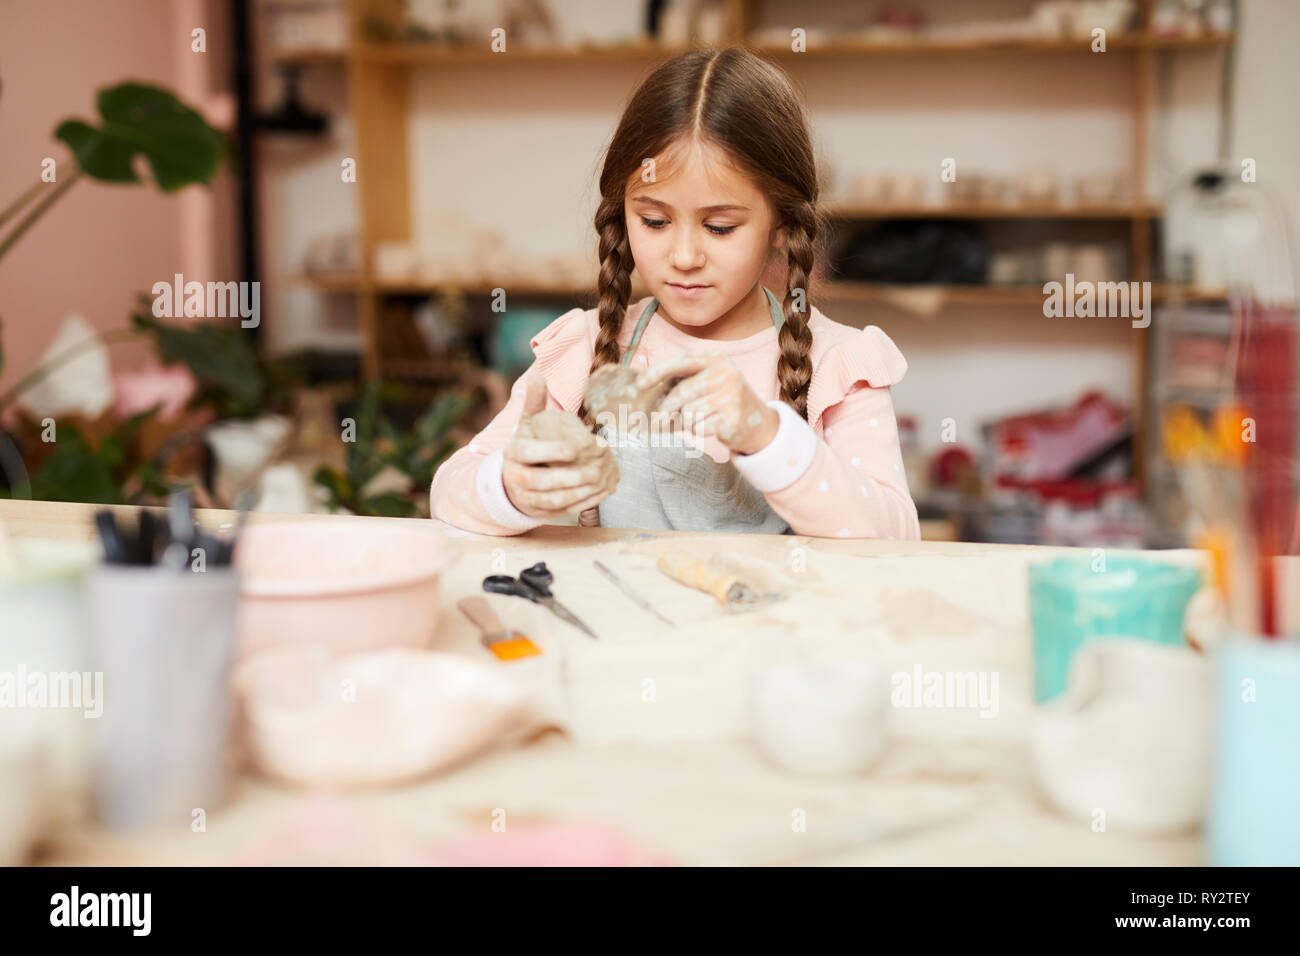 Cute Little Girl Shaping Clay - Stock Image